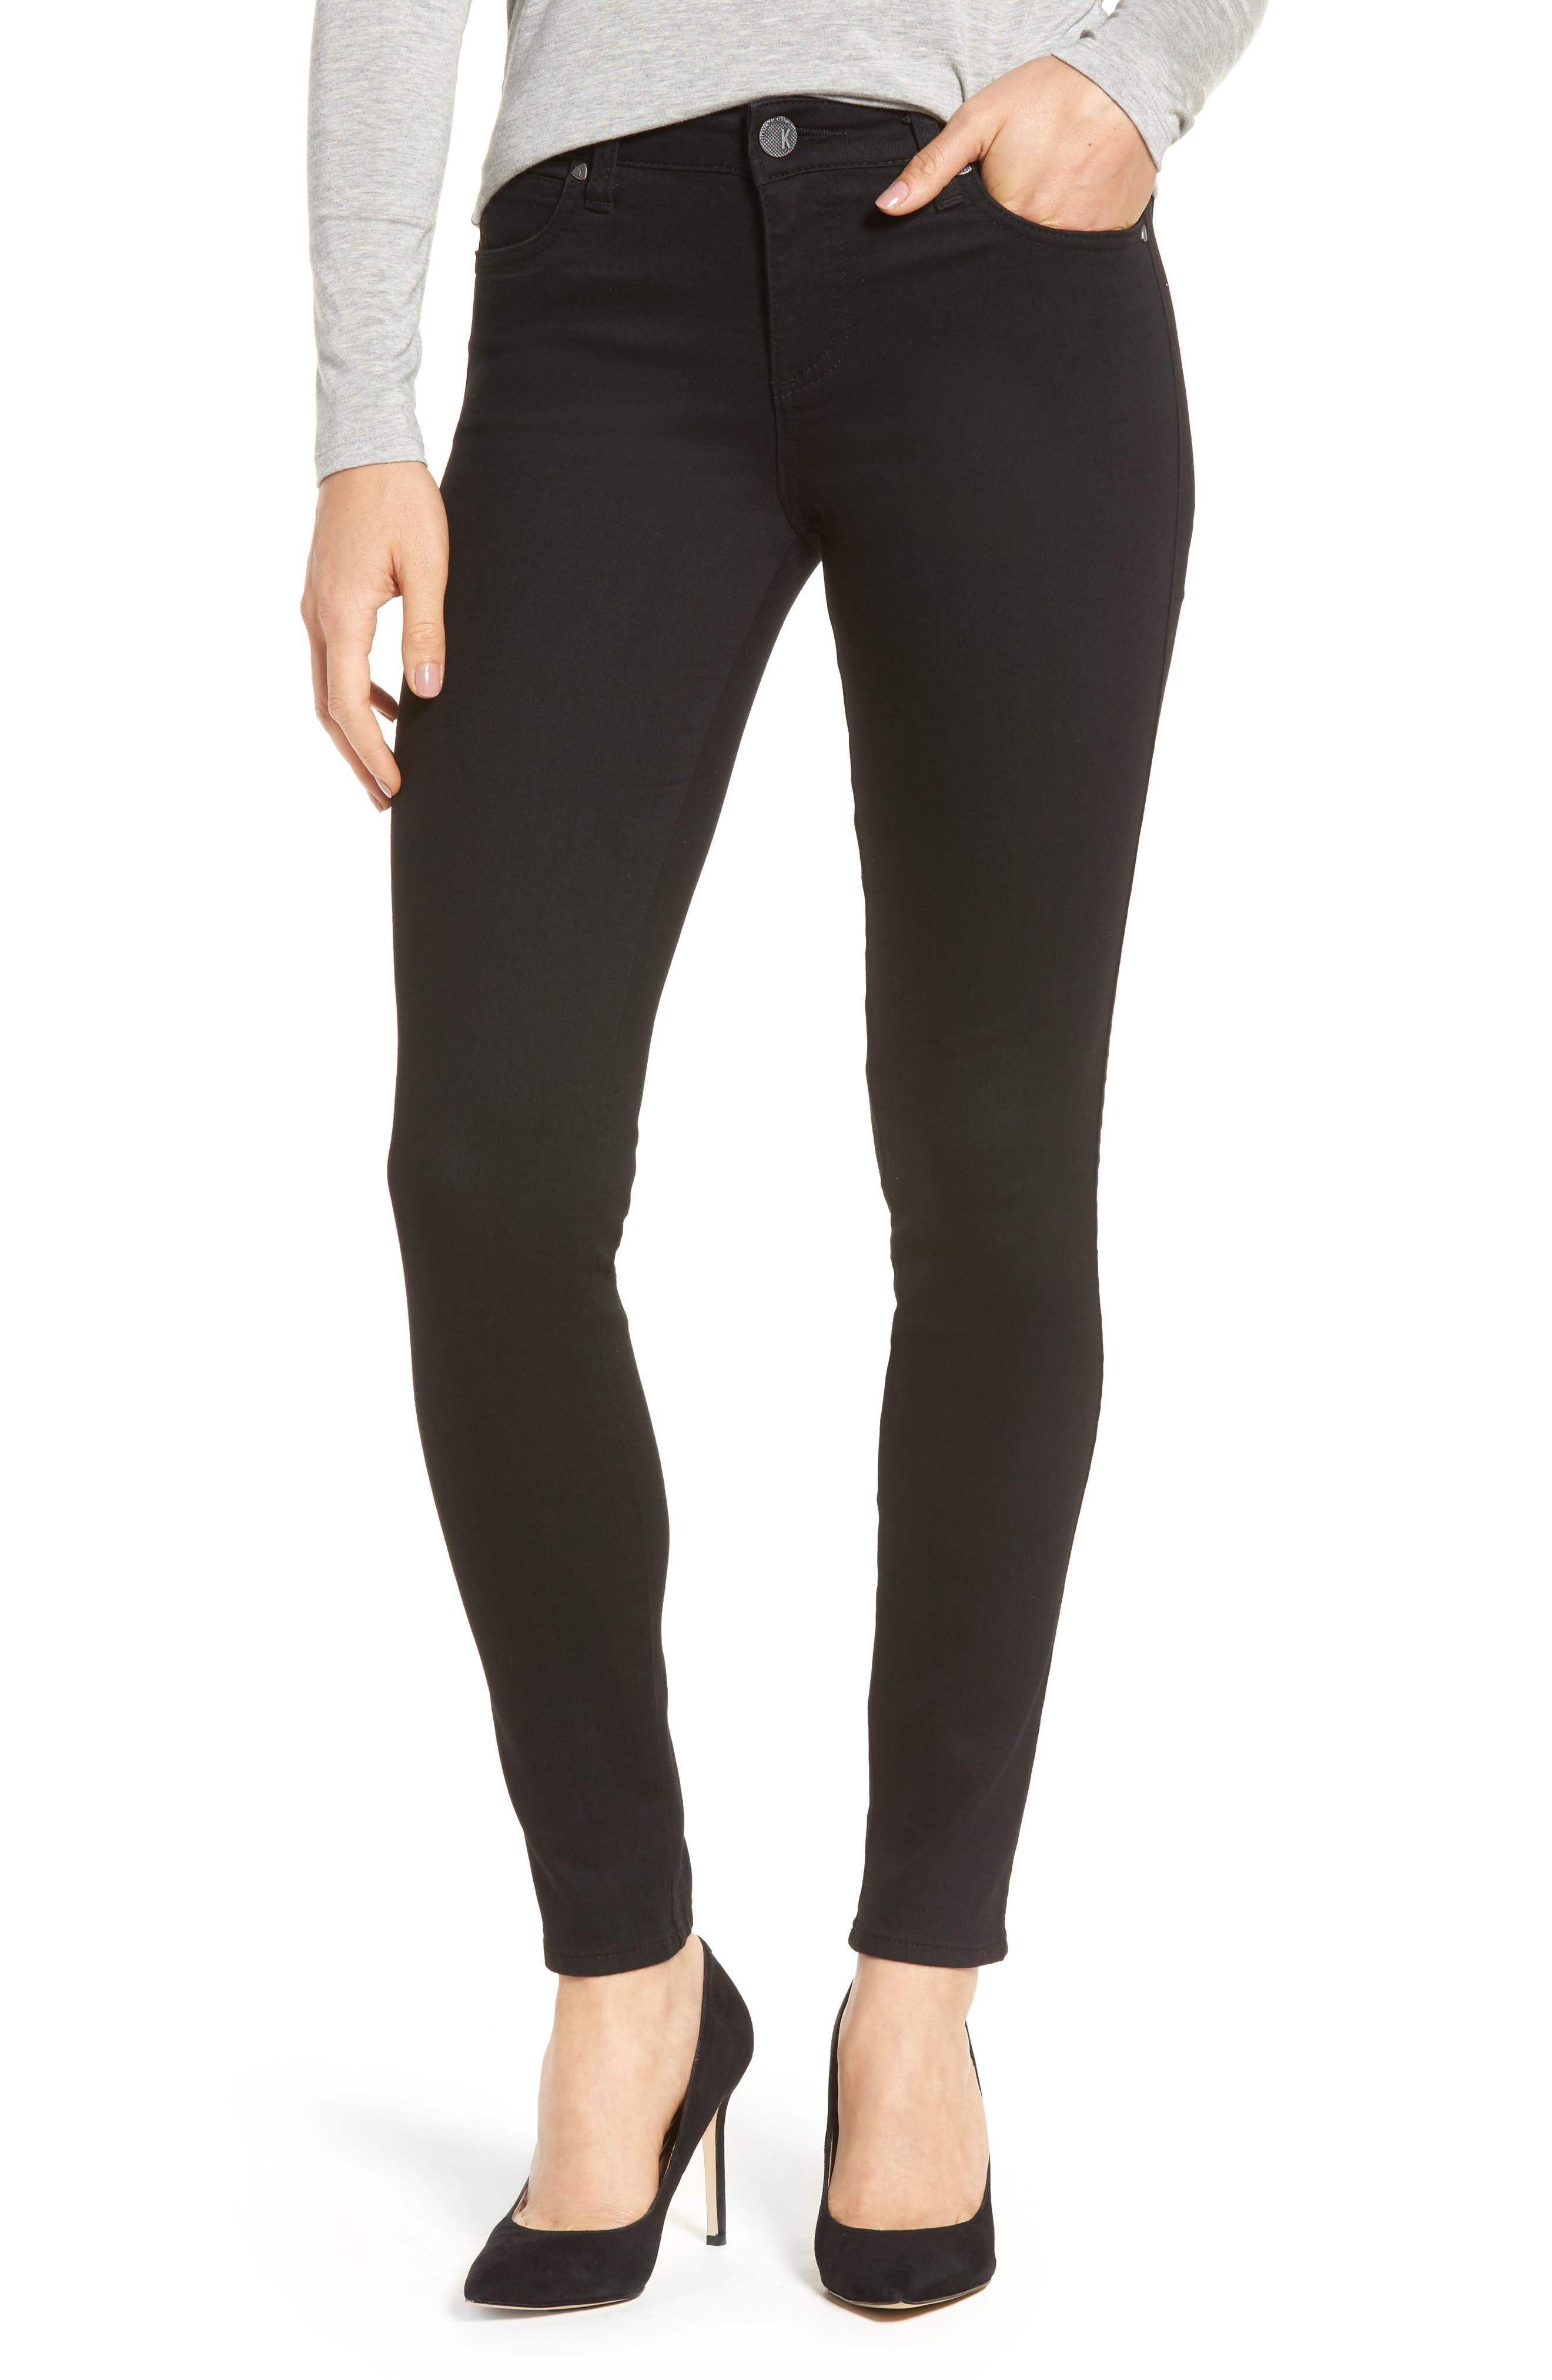 Diana Curvy Fit Skinny Jeans,                             Main thumbnail 1, color,                             002